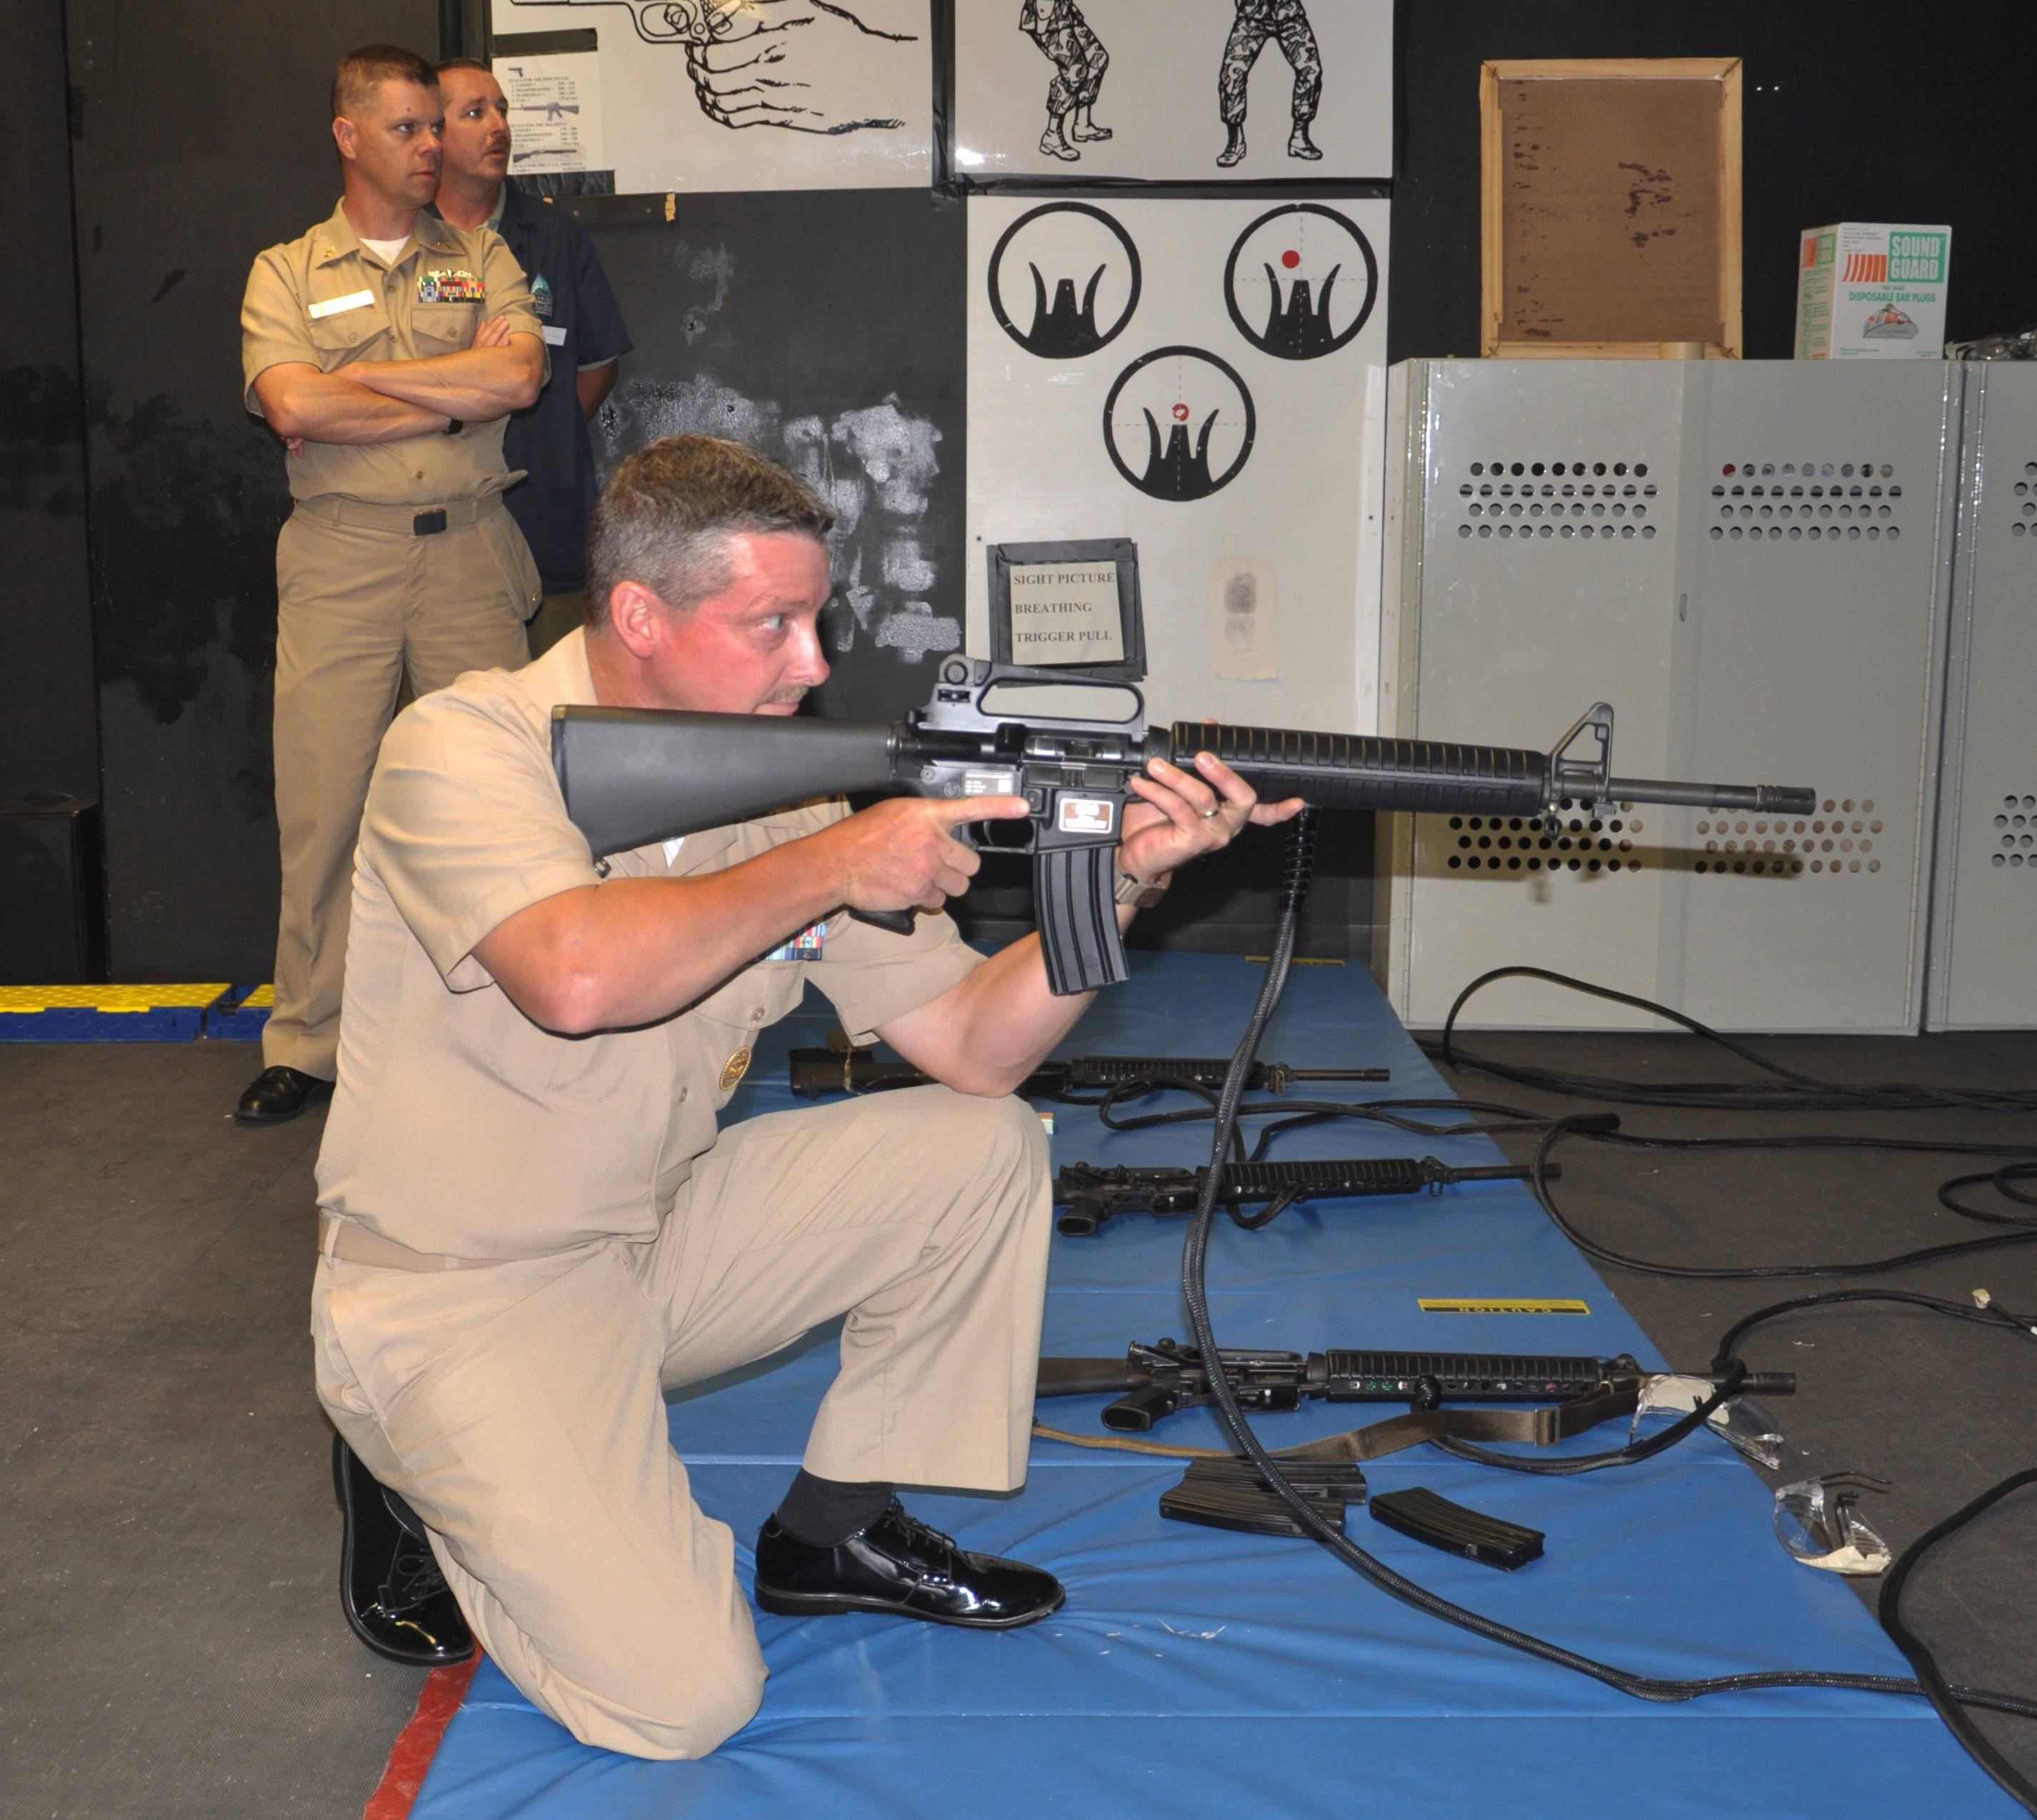 This is an example of an M-16A1 rifle, two of which were loaned to the Des Plaines Police Department by the Department of Defense and that have gone missing.